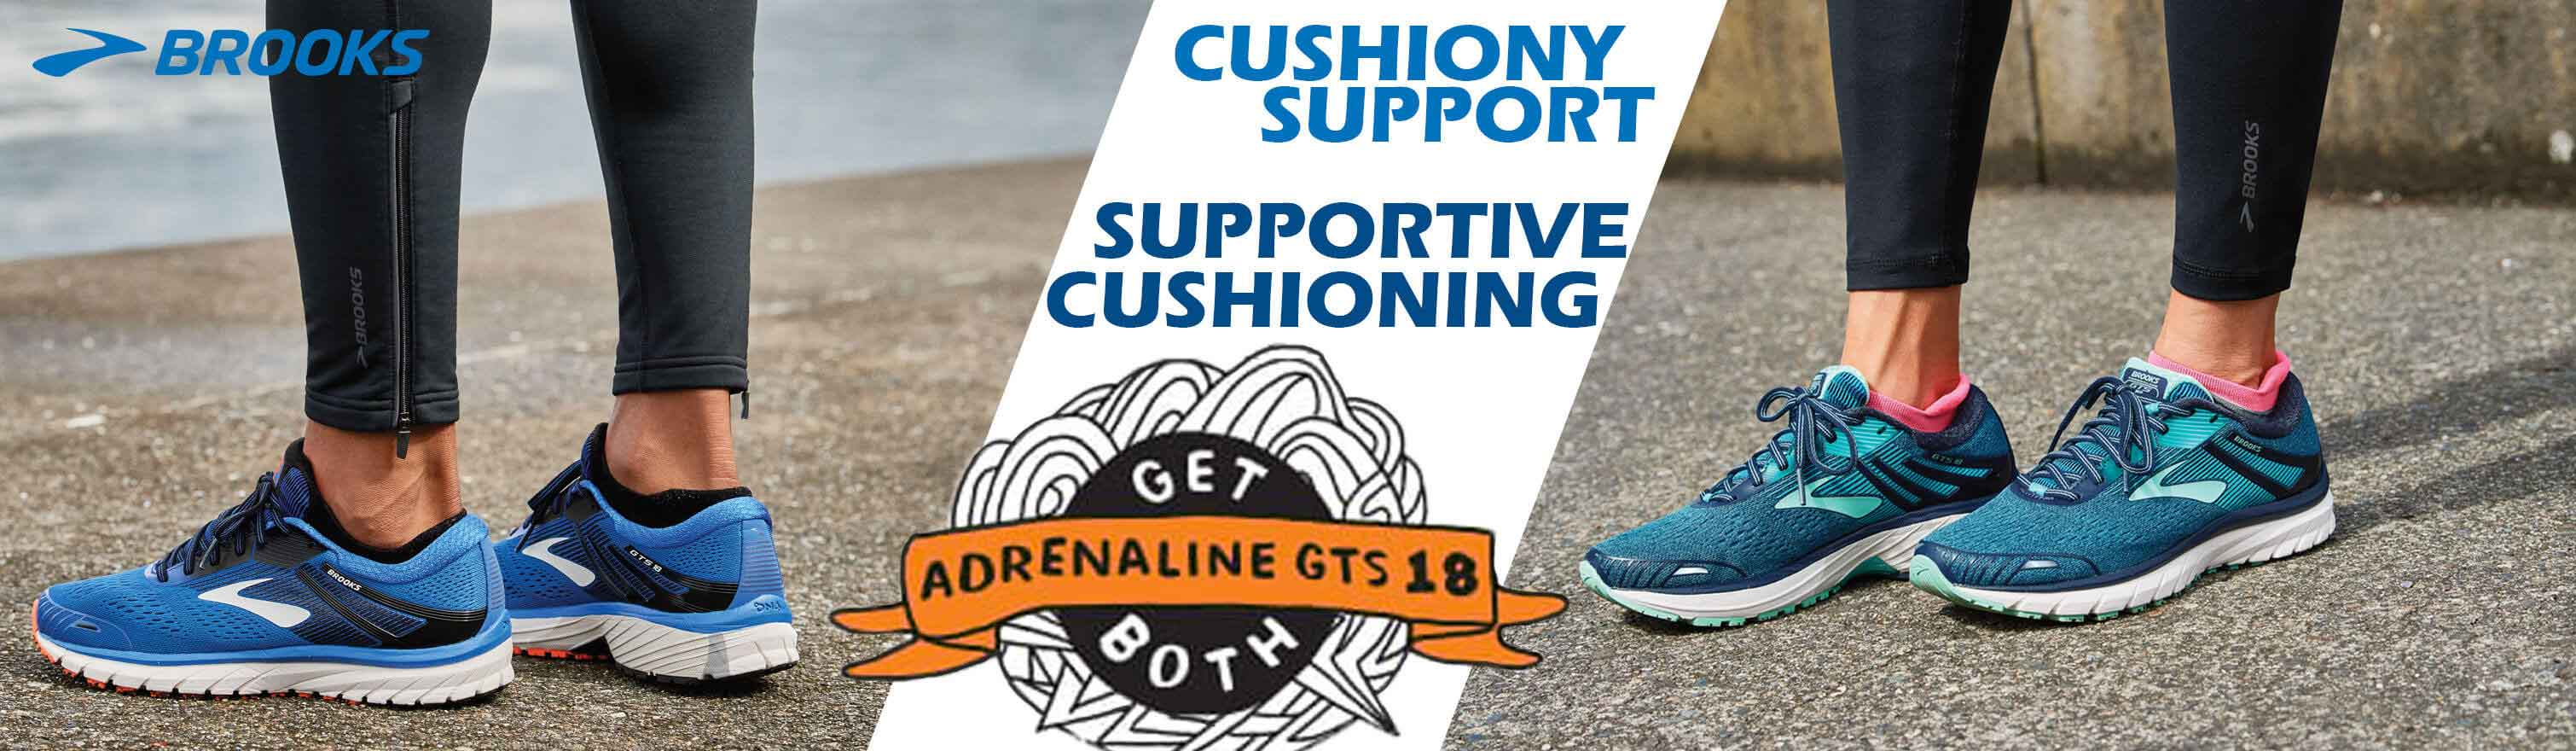 Adrenaline GTS 18 Running Shoes